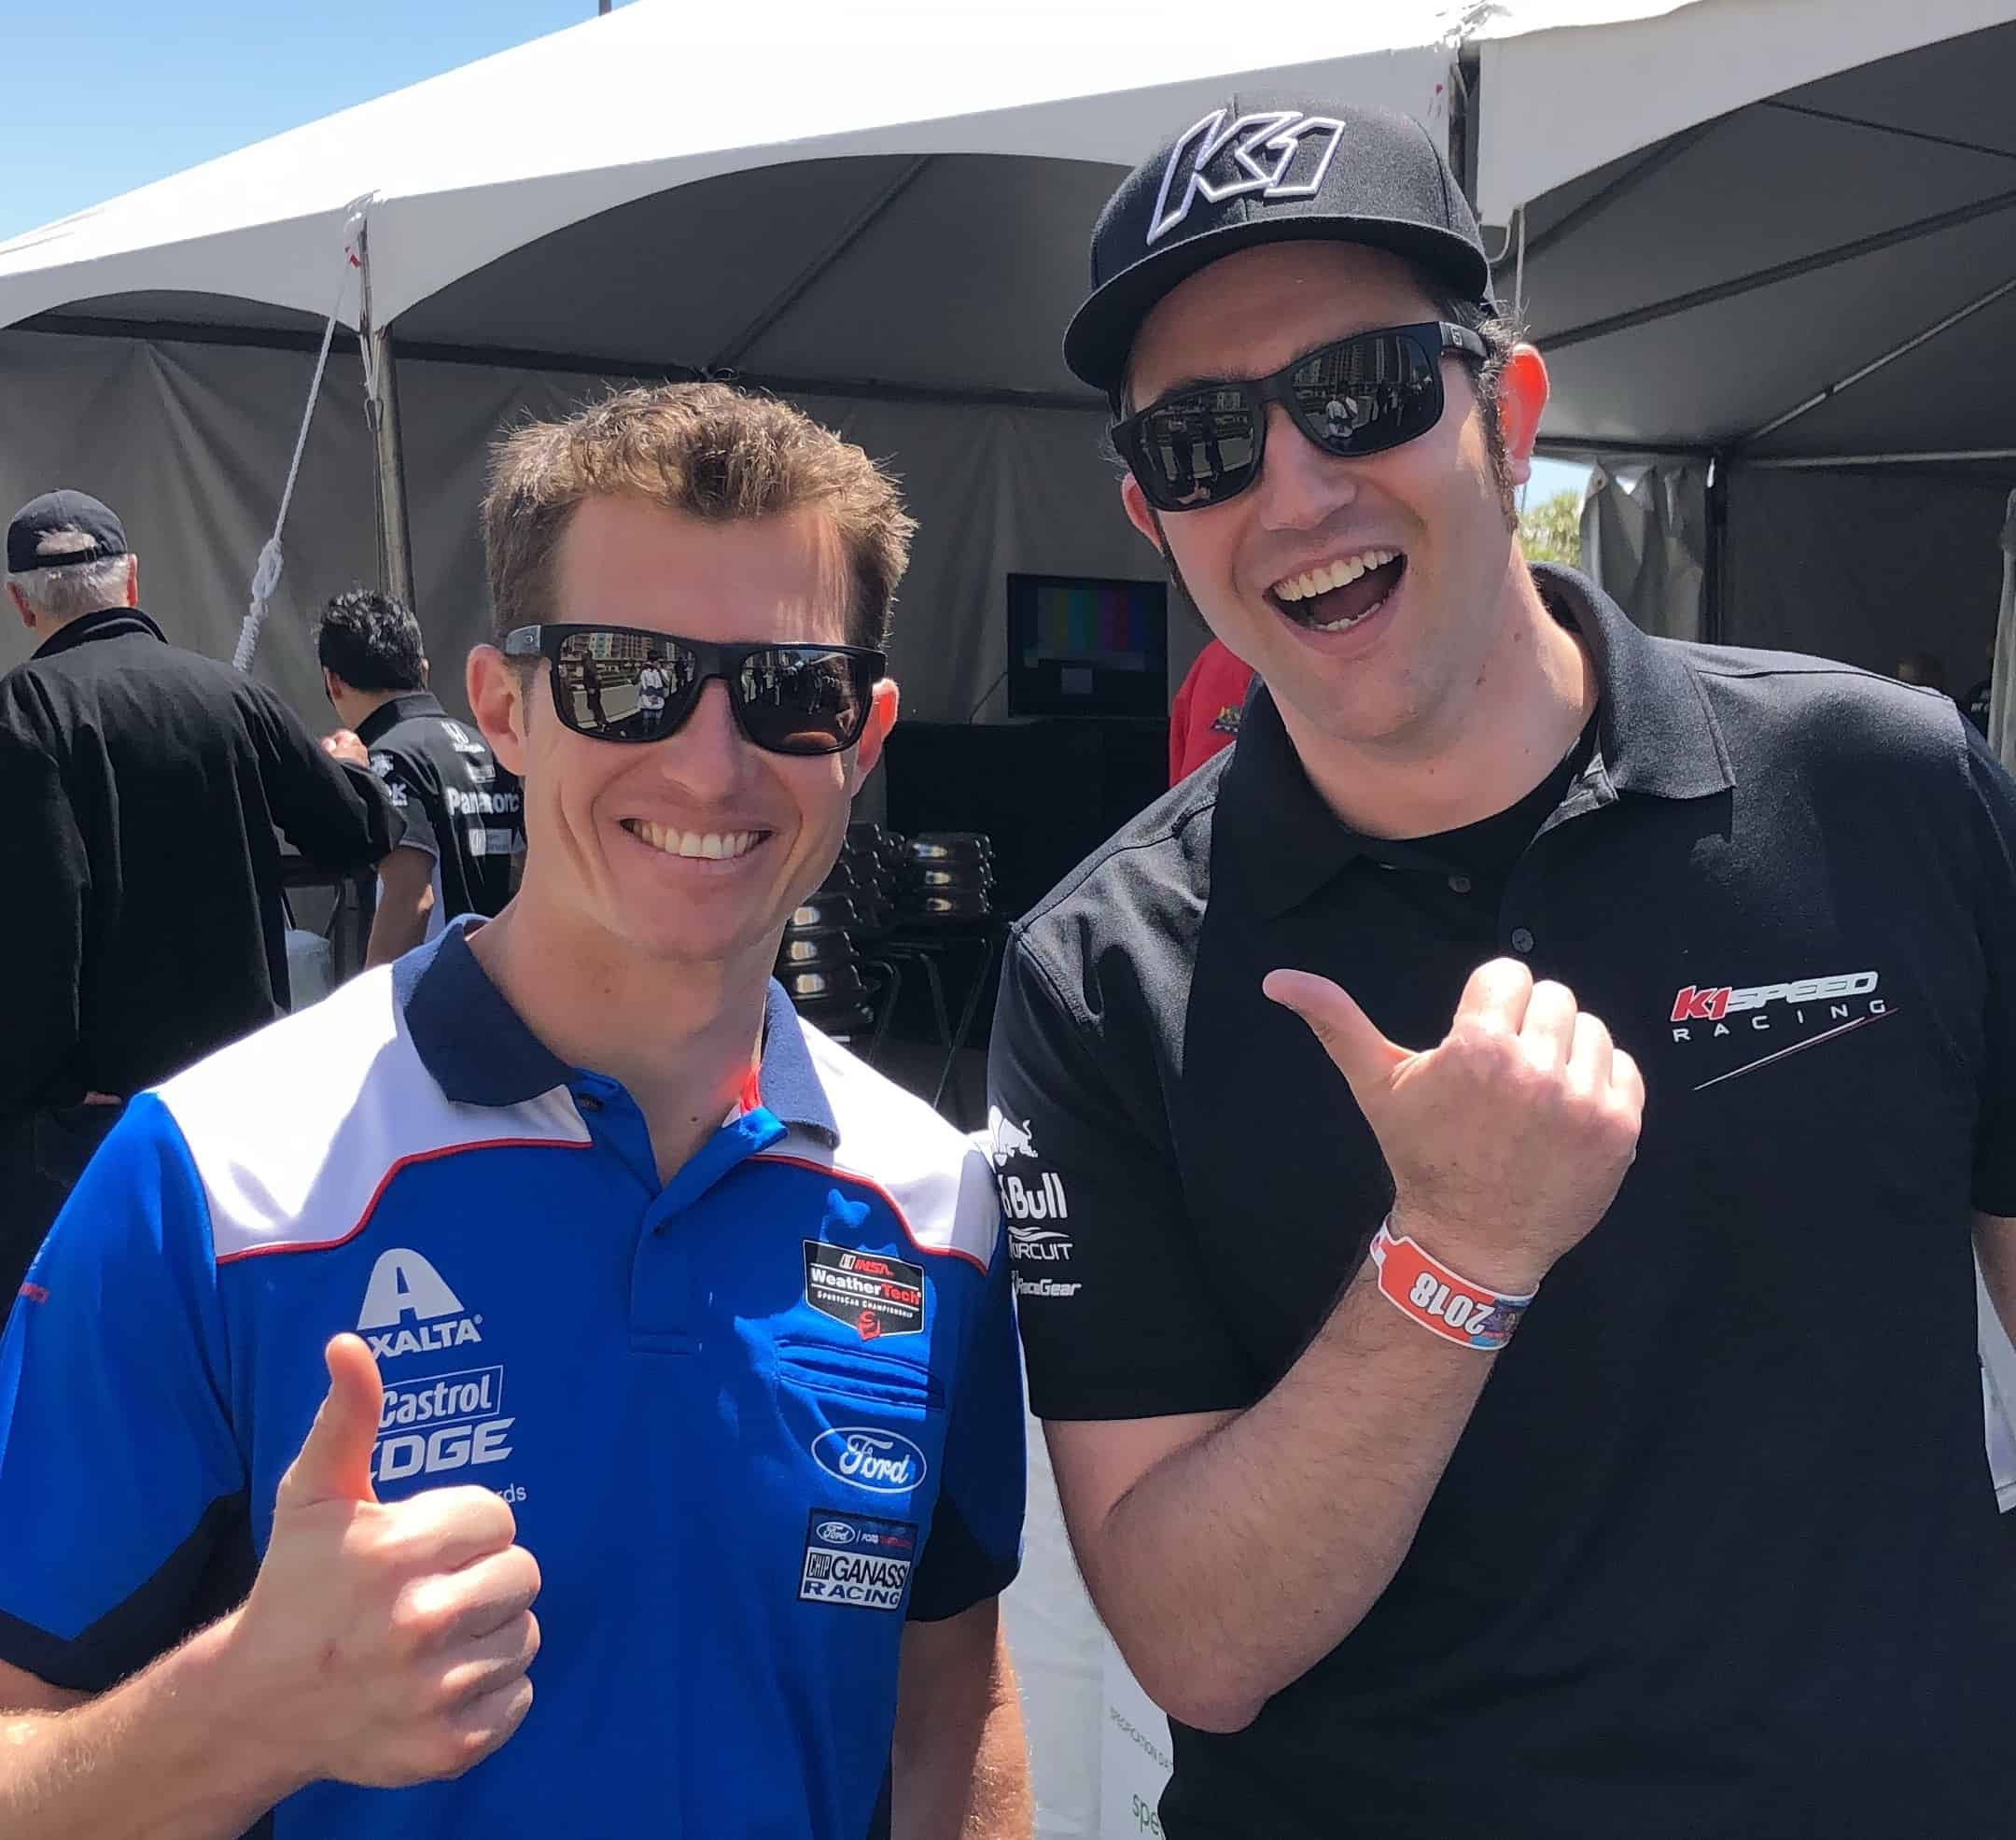 Ryan Briscoe and Ryan Jurnecka of K1 Speed at the Grand Prix of Long Beach